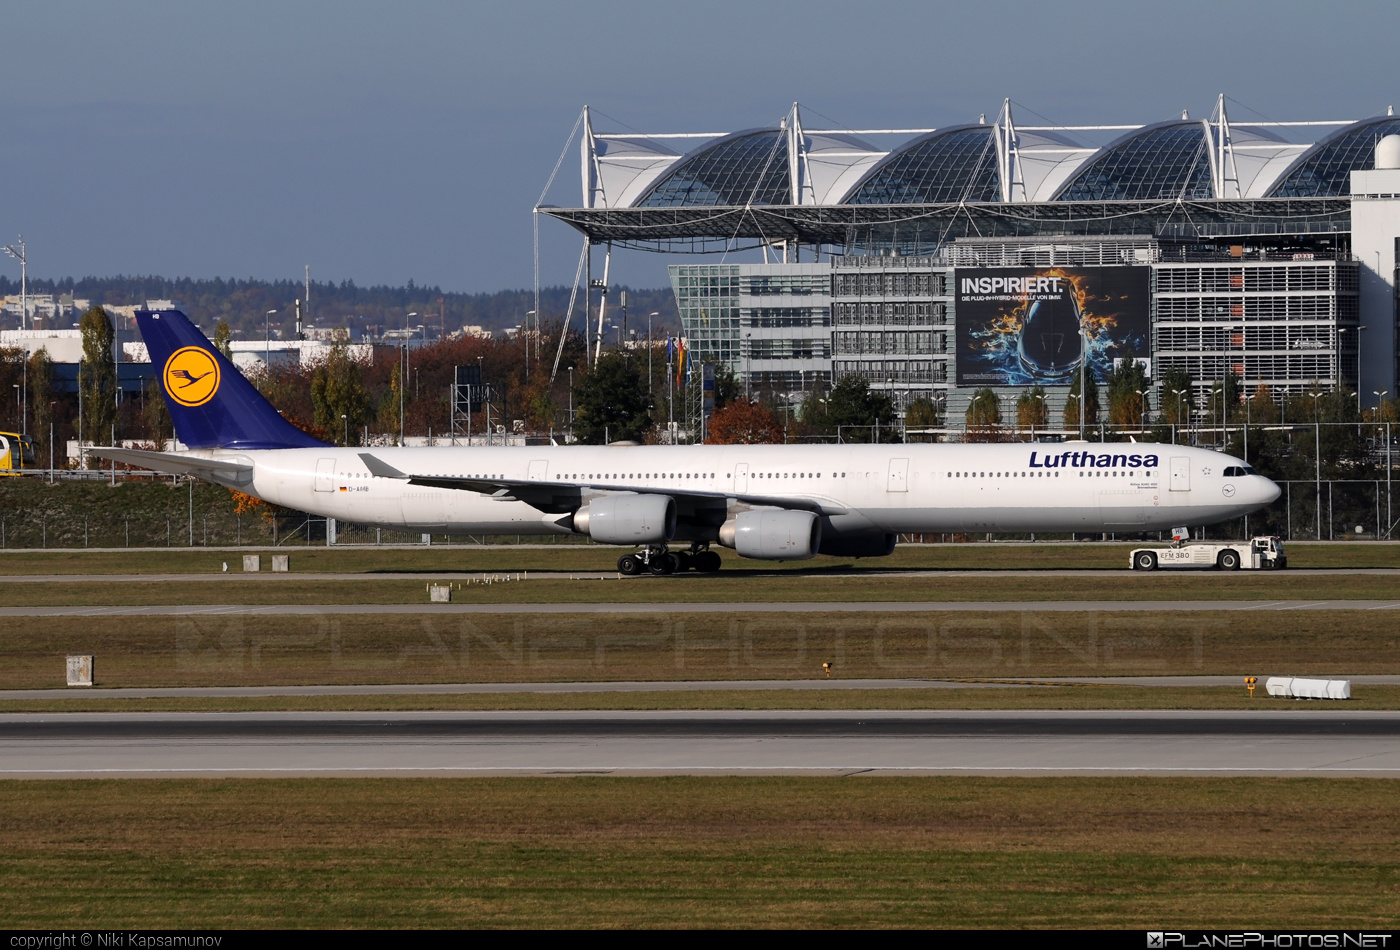 Airbus A340-642 - D-AIHB operated by Lufthansa #a340 #a340family #airbus #airbus340 #lufthansa